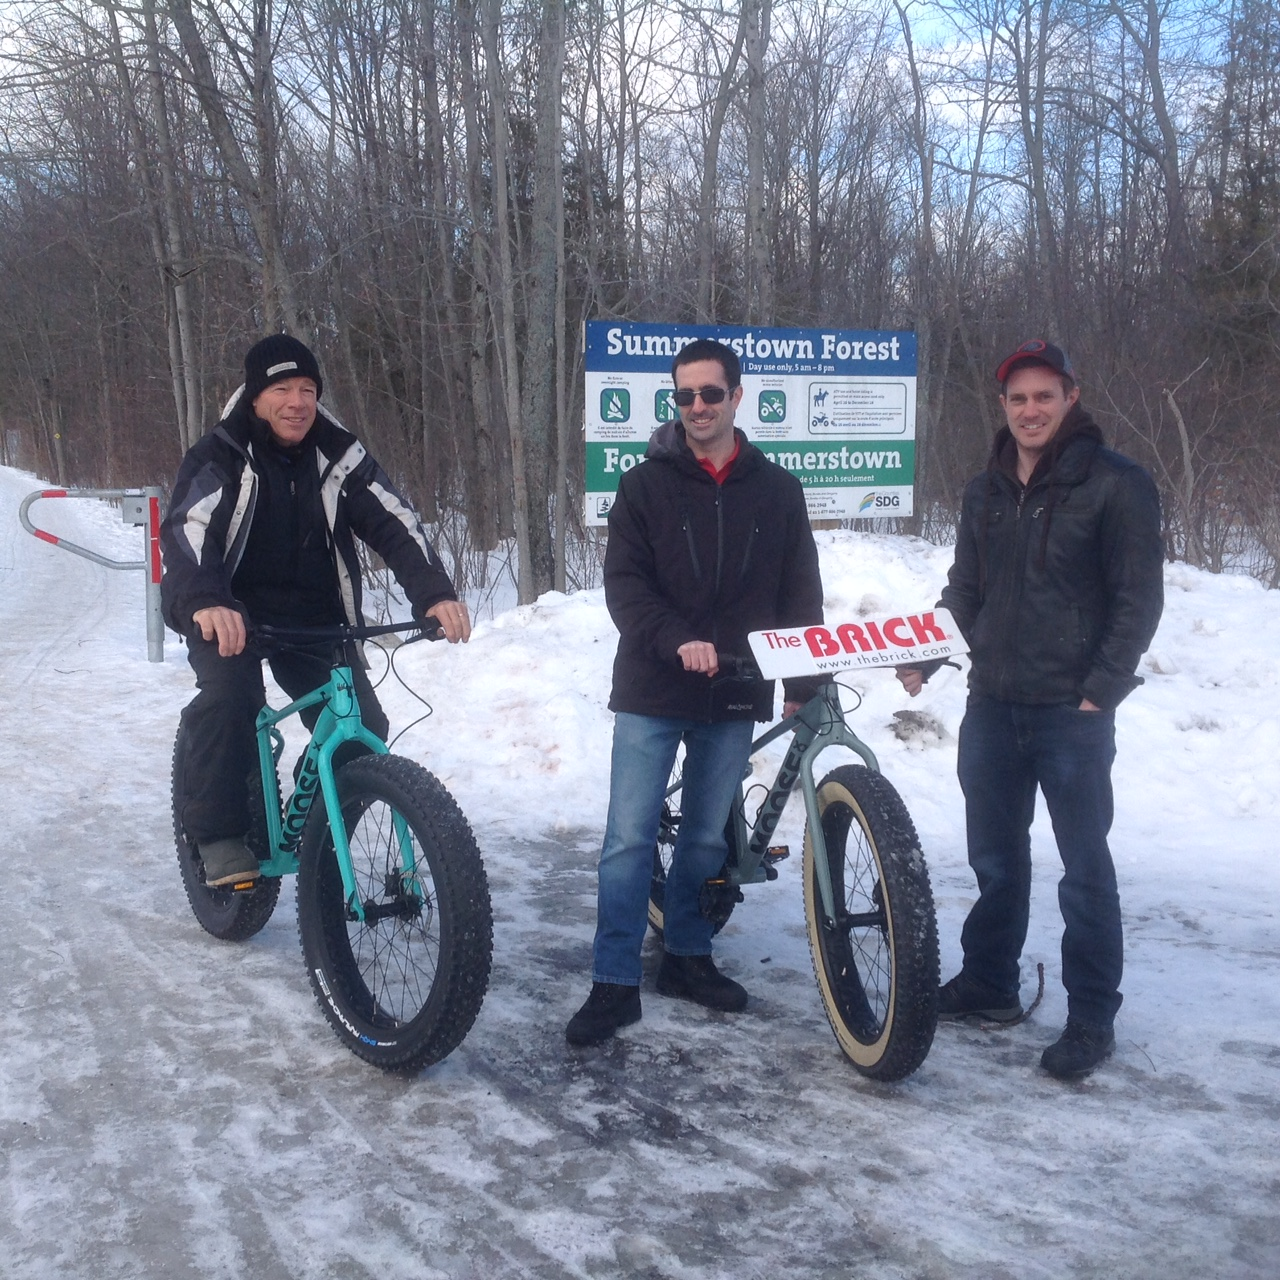 Fat bikes all the rage at Summerstown Trails